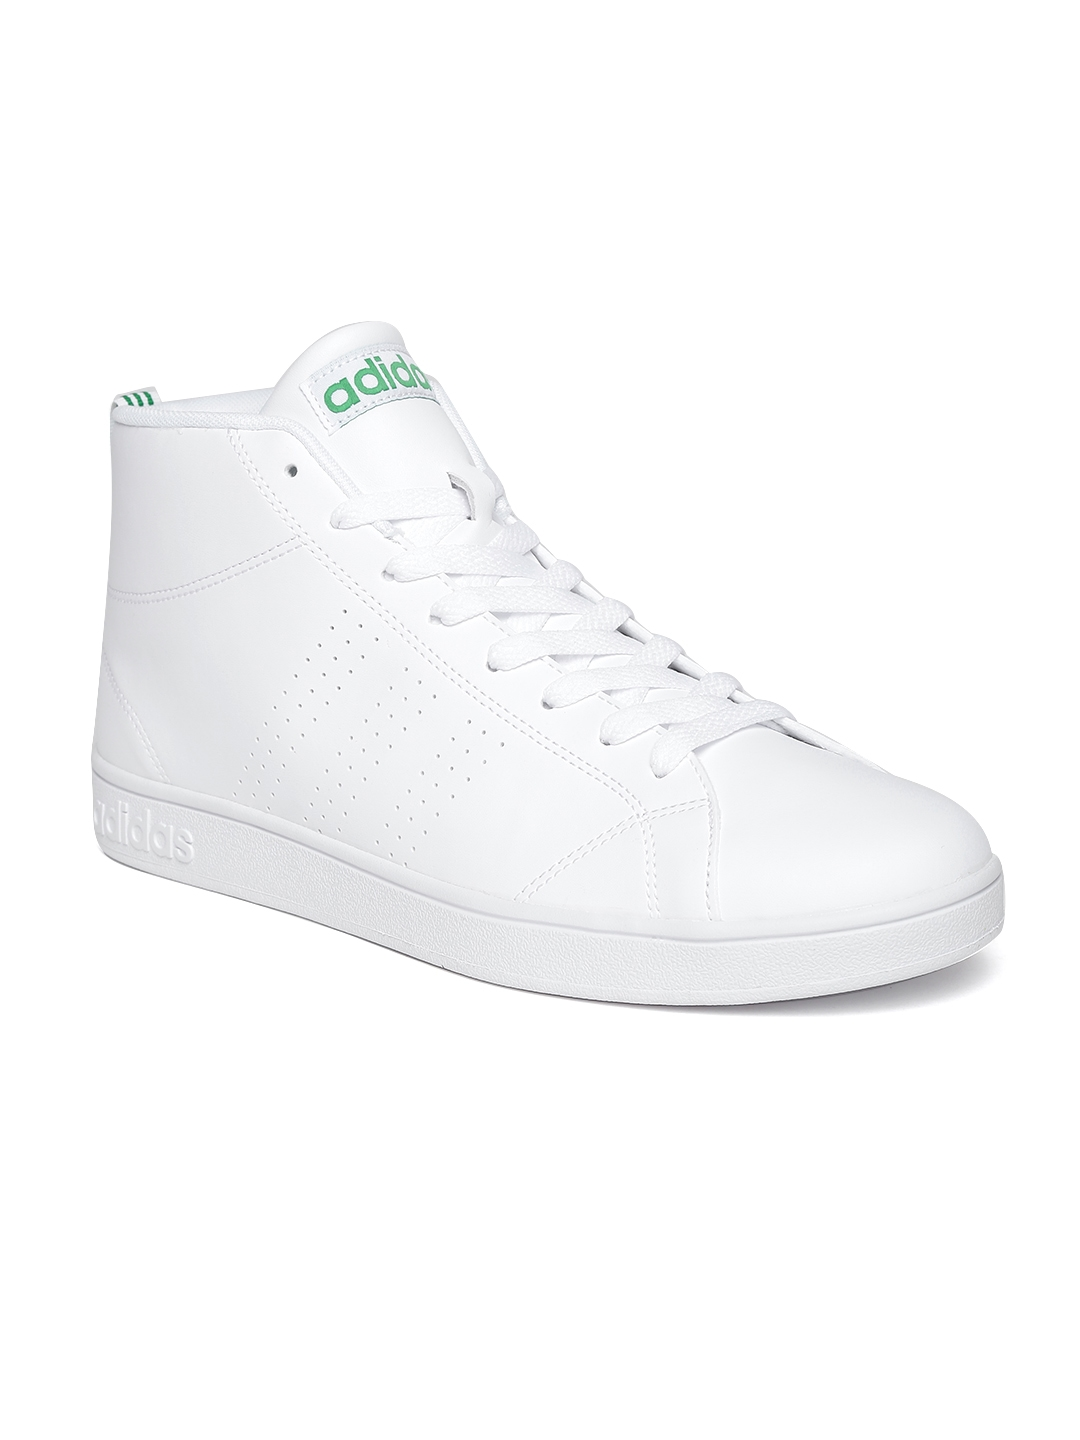 Clean Sneakers Men Advantage Adidas Neo White Buy Top Solid Mid gvxqfCyXw